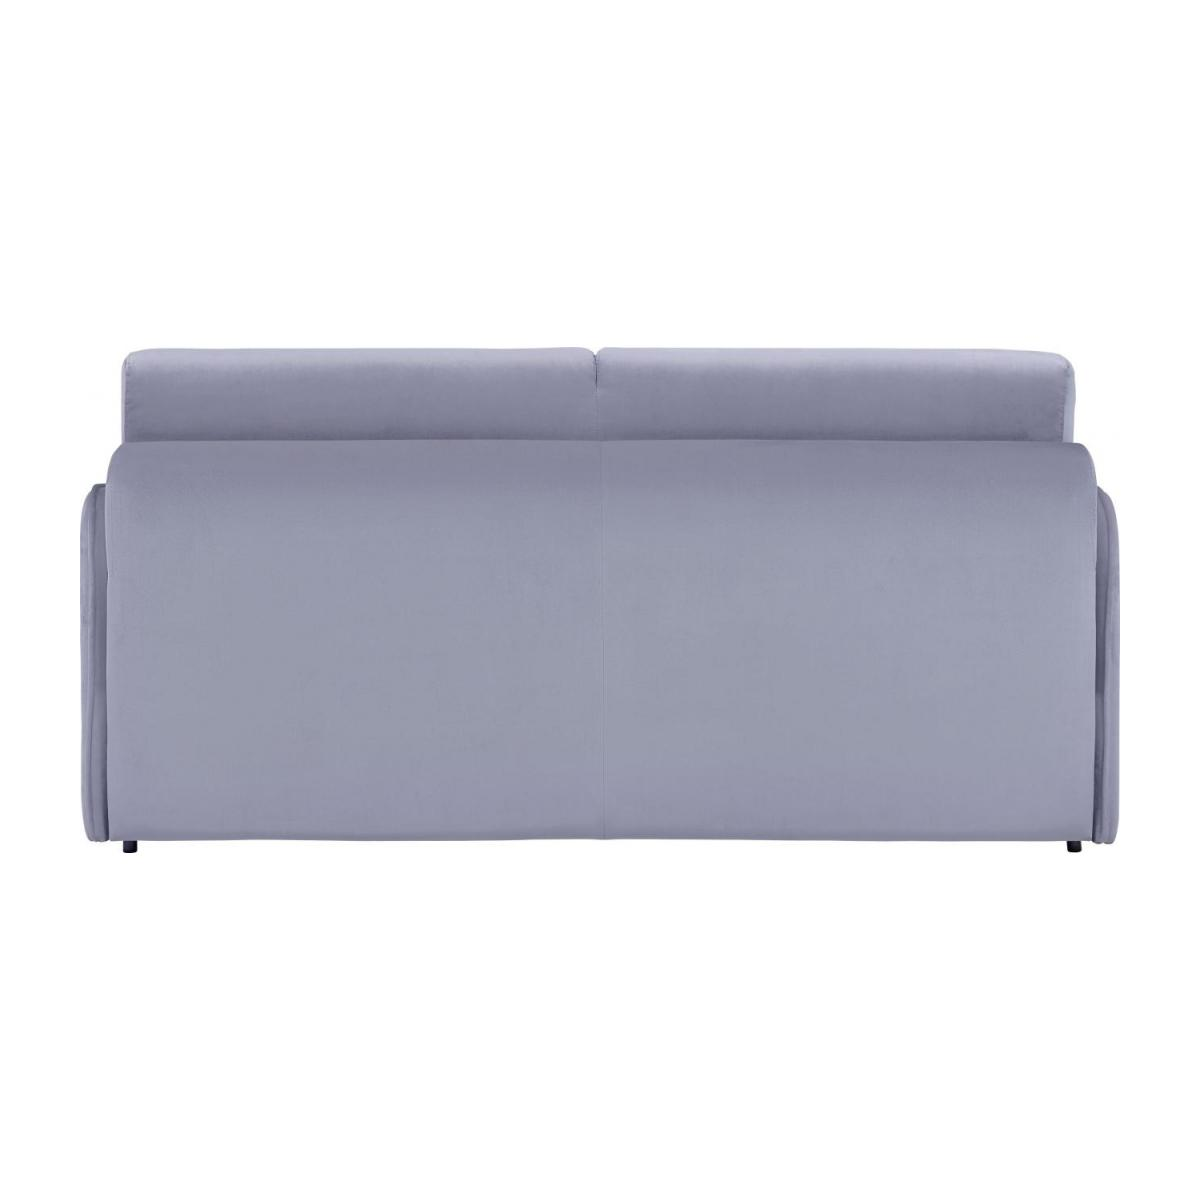 Grey velvet 3 seat fold-out sofa n°5